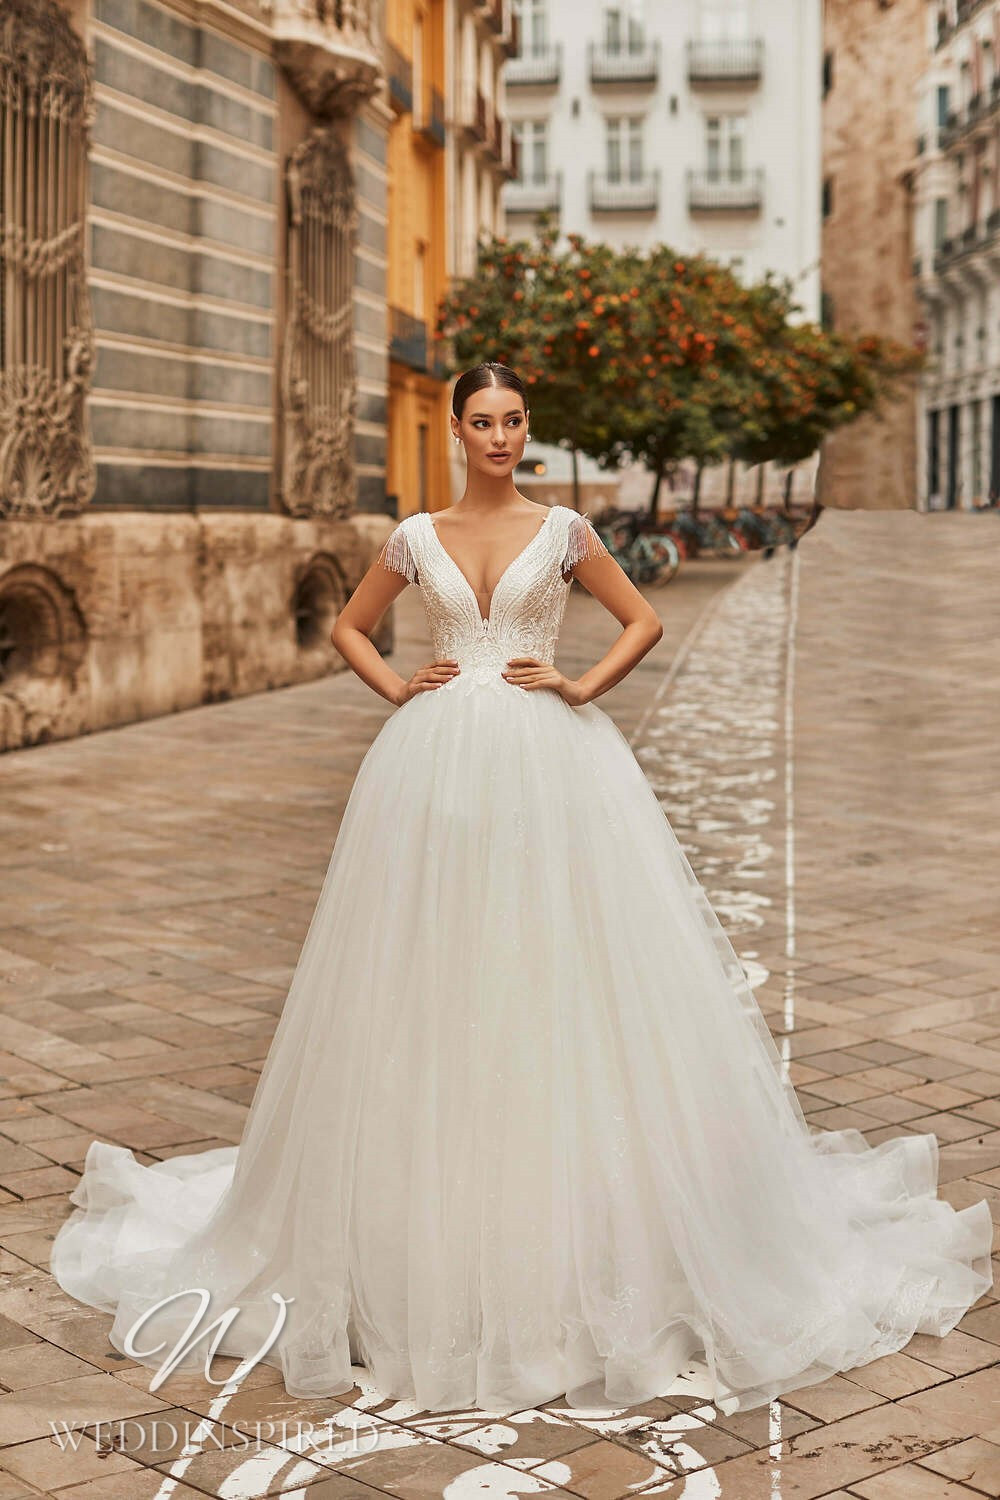 A Royal by Naviblue 2021 tulle princess wedding dress with cap sleeves